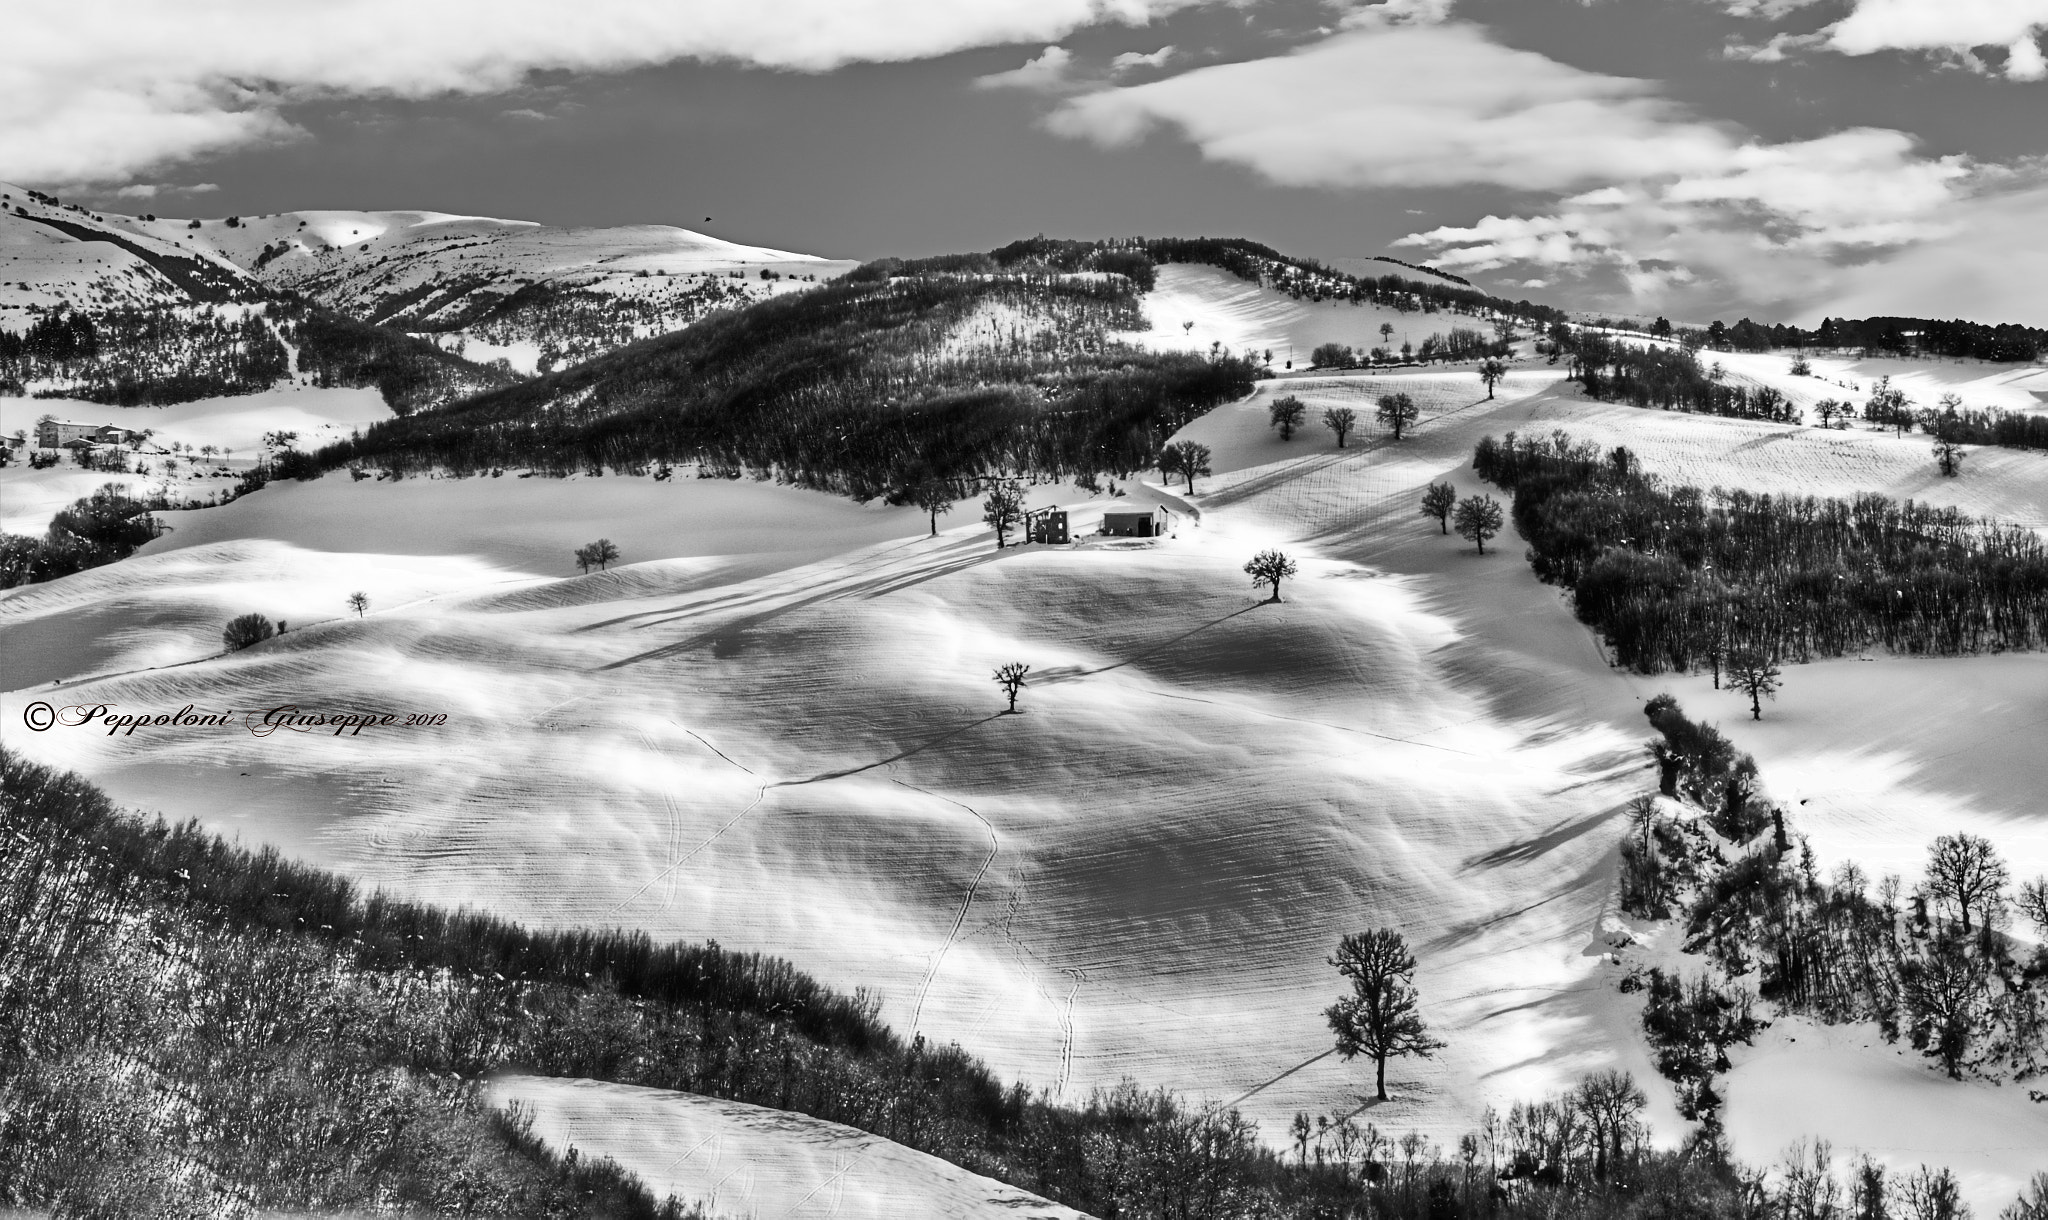 Photograph Monti Sibillini in B/W by Giuseppe  Peppoloni on 500px